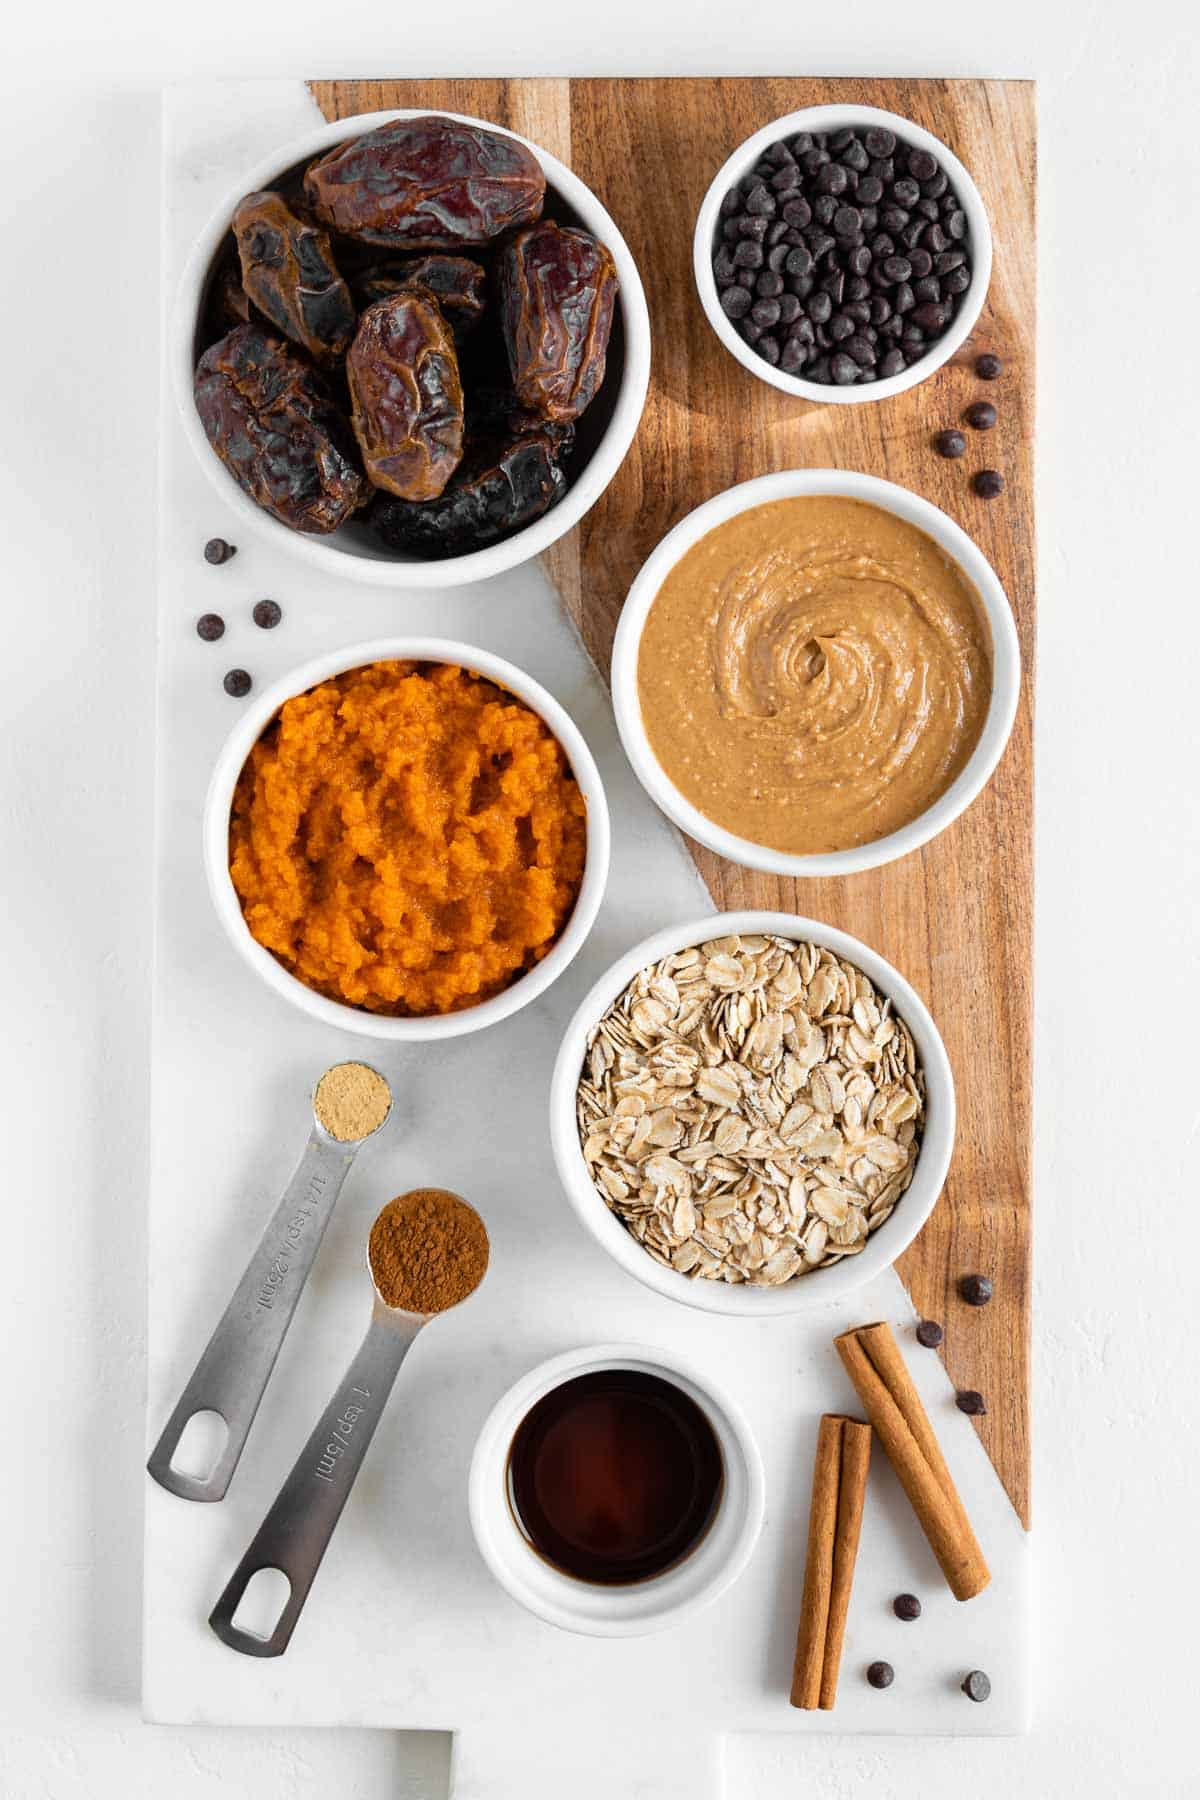 bowls filled with pumpkin puree, medjool dates, peanut butter, oats, vanilla extract, and chocolate chips on a wooden marble board